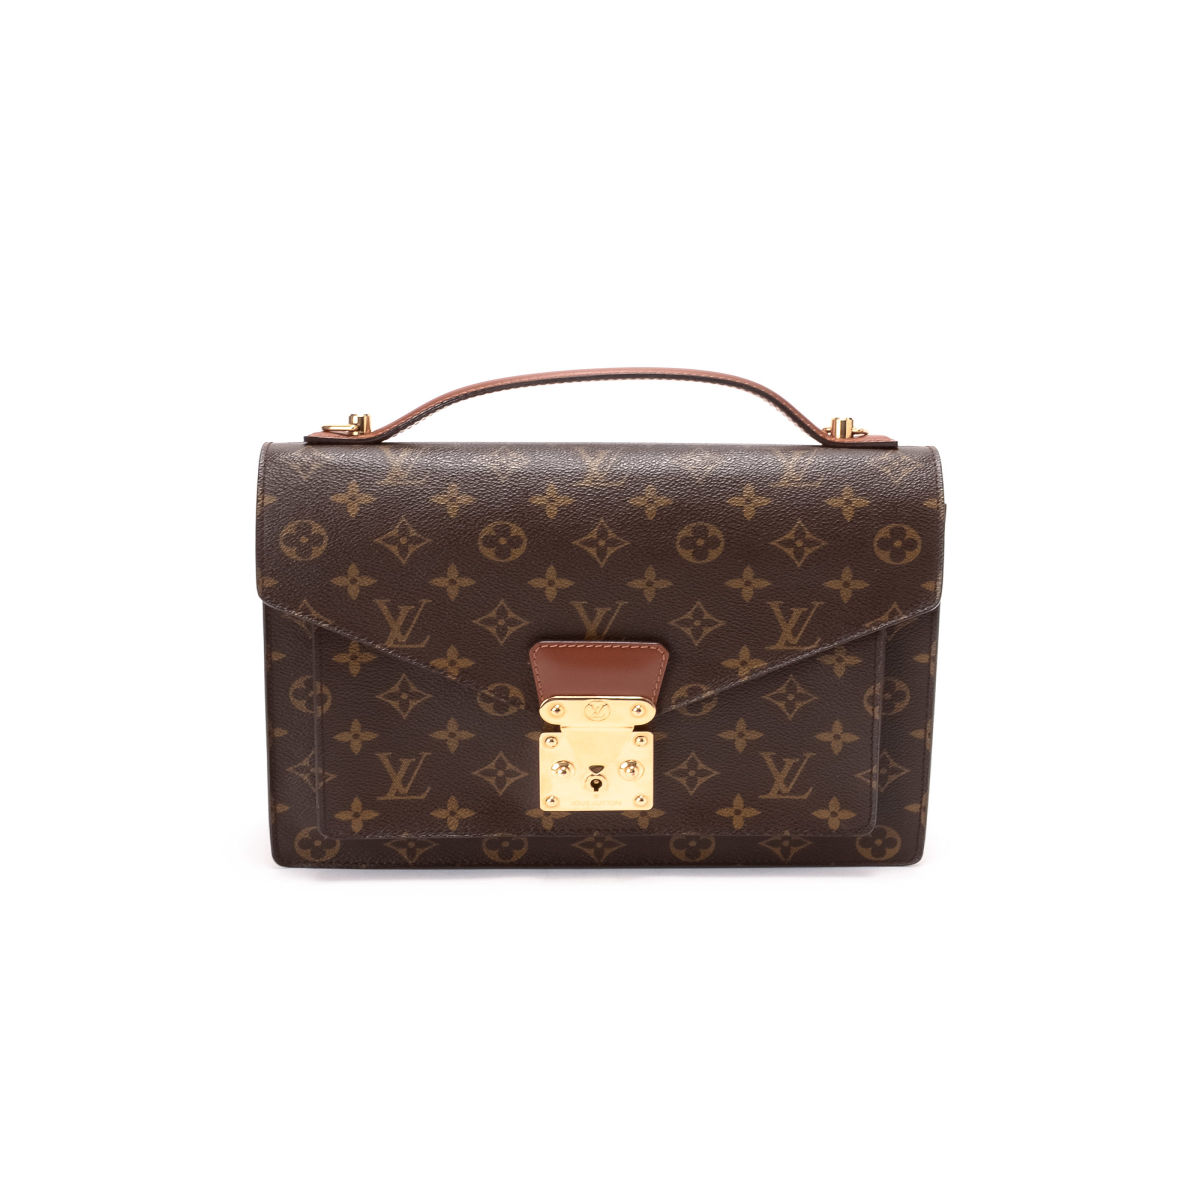 Louis Vuitton Pre-owned - Monceau leather handbag GNQRN6